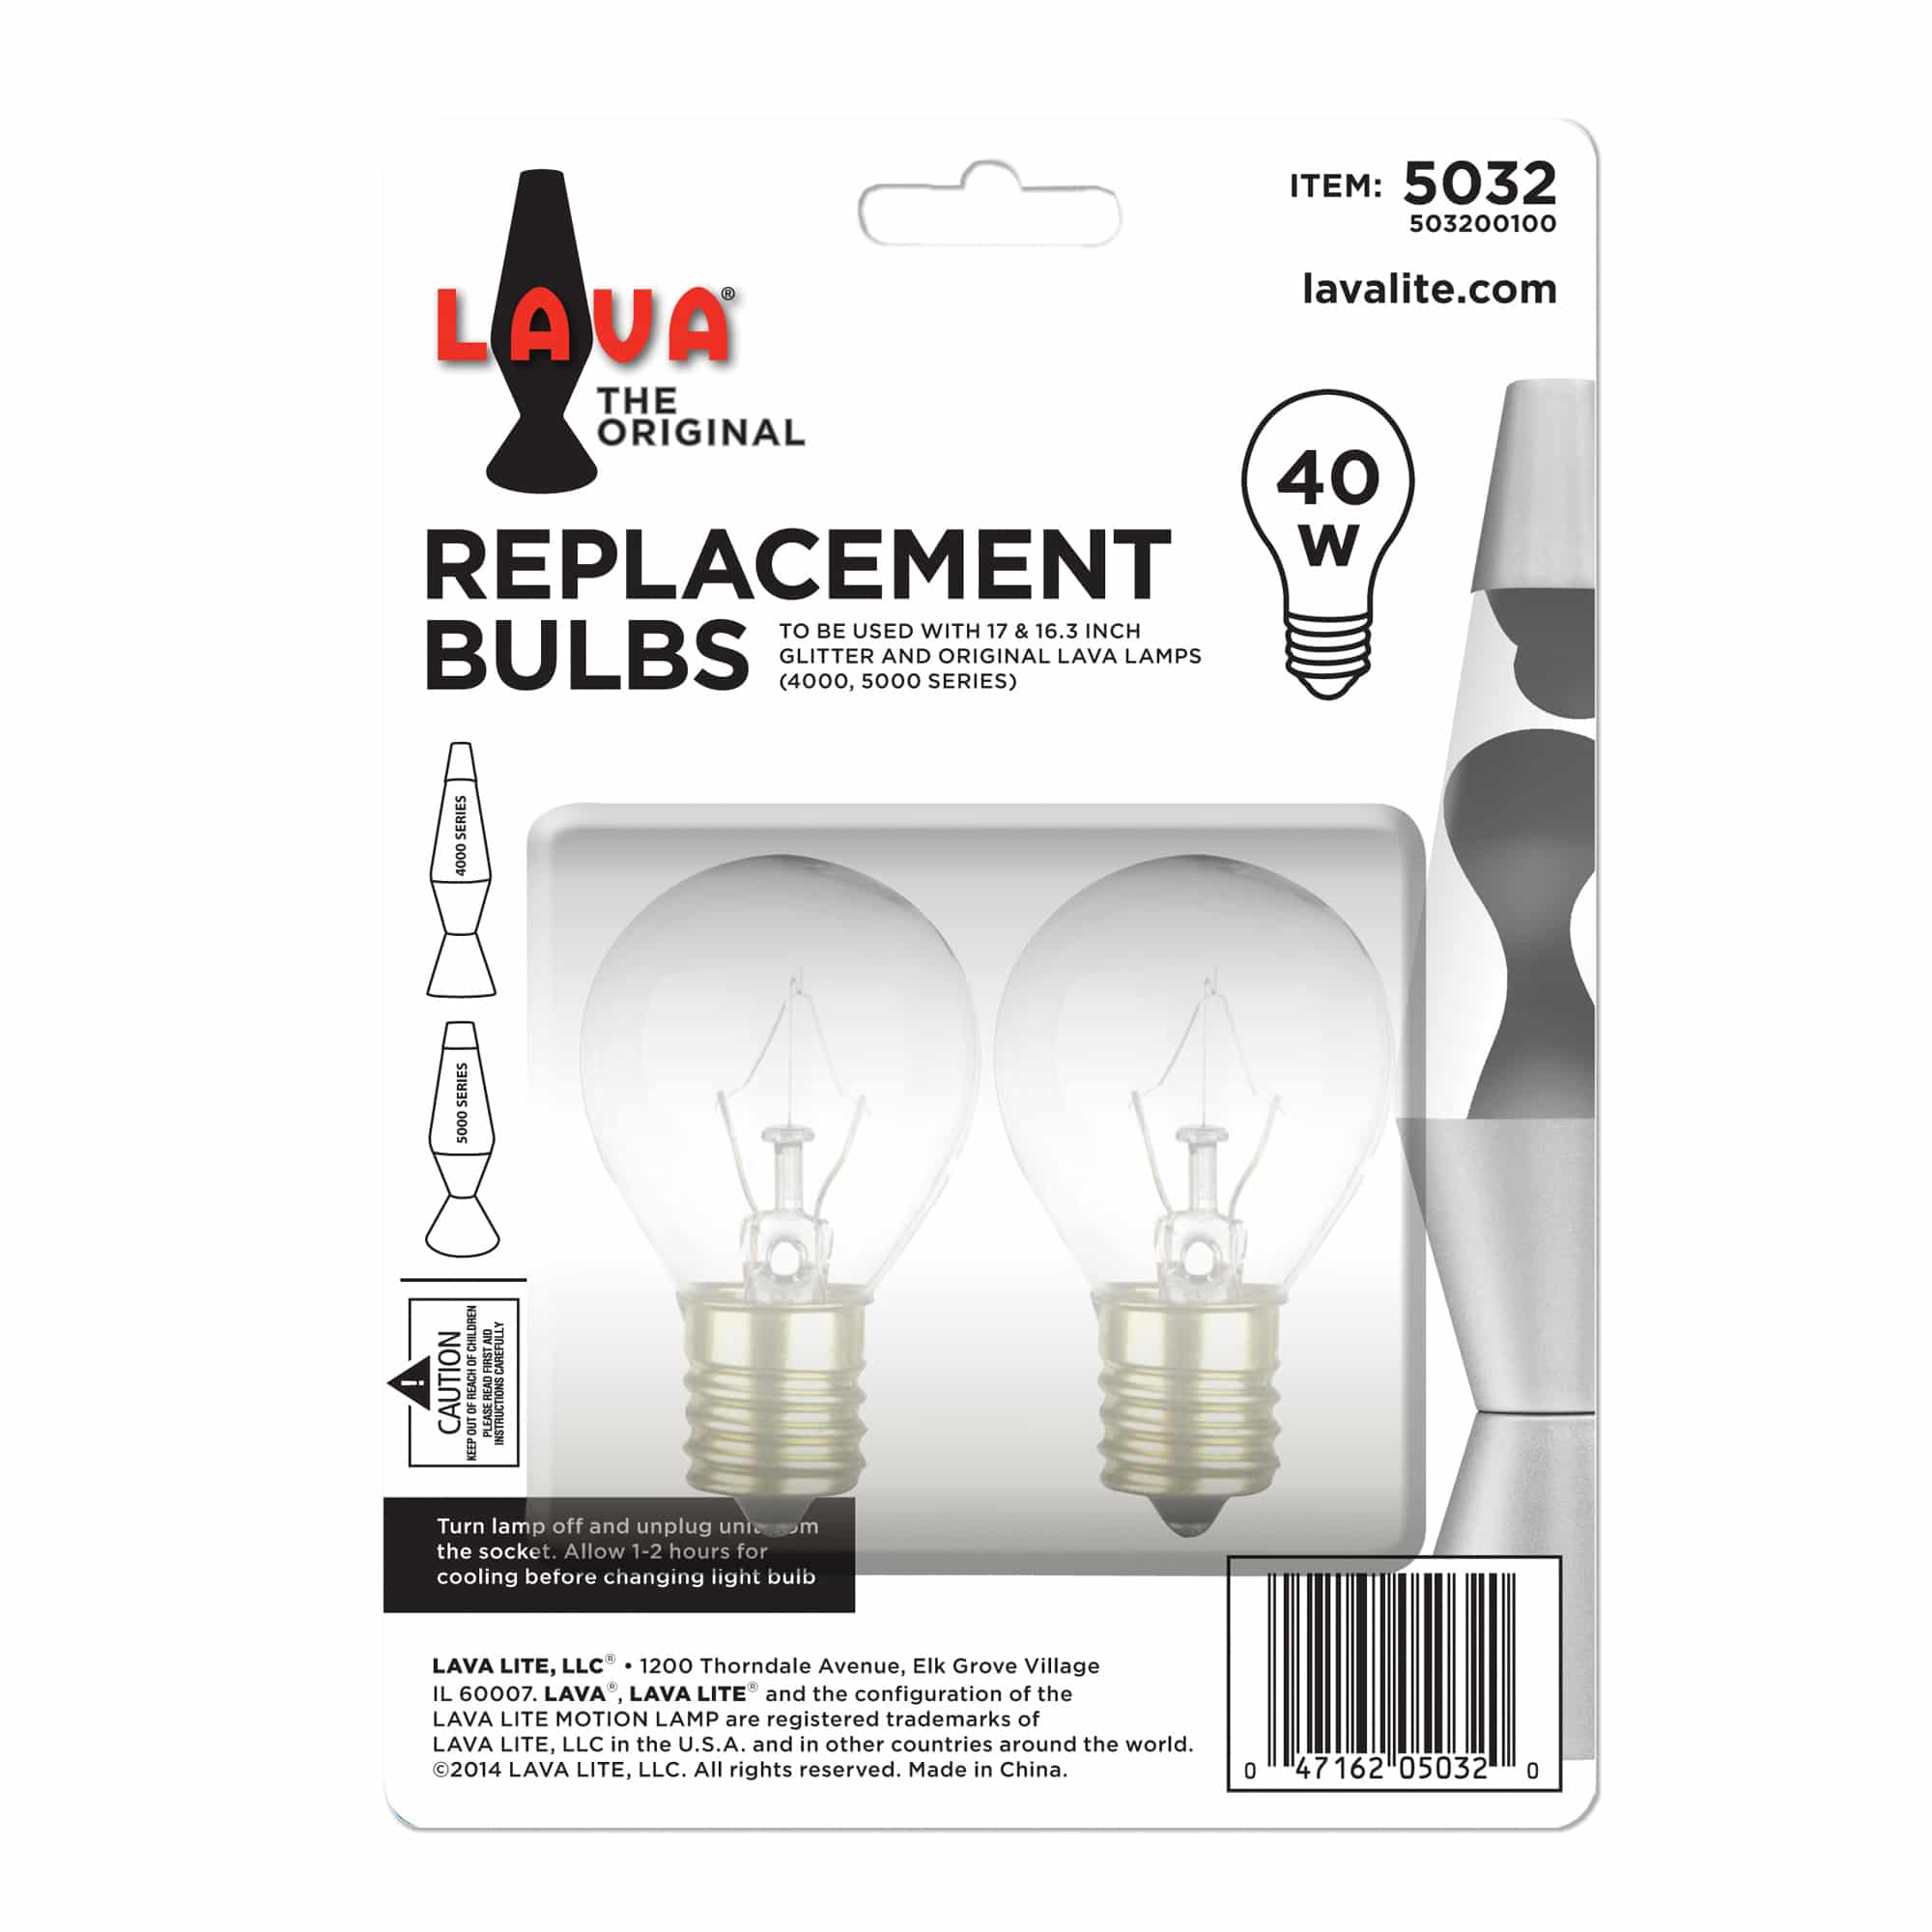 Replacement bulbs - 40w